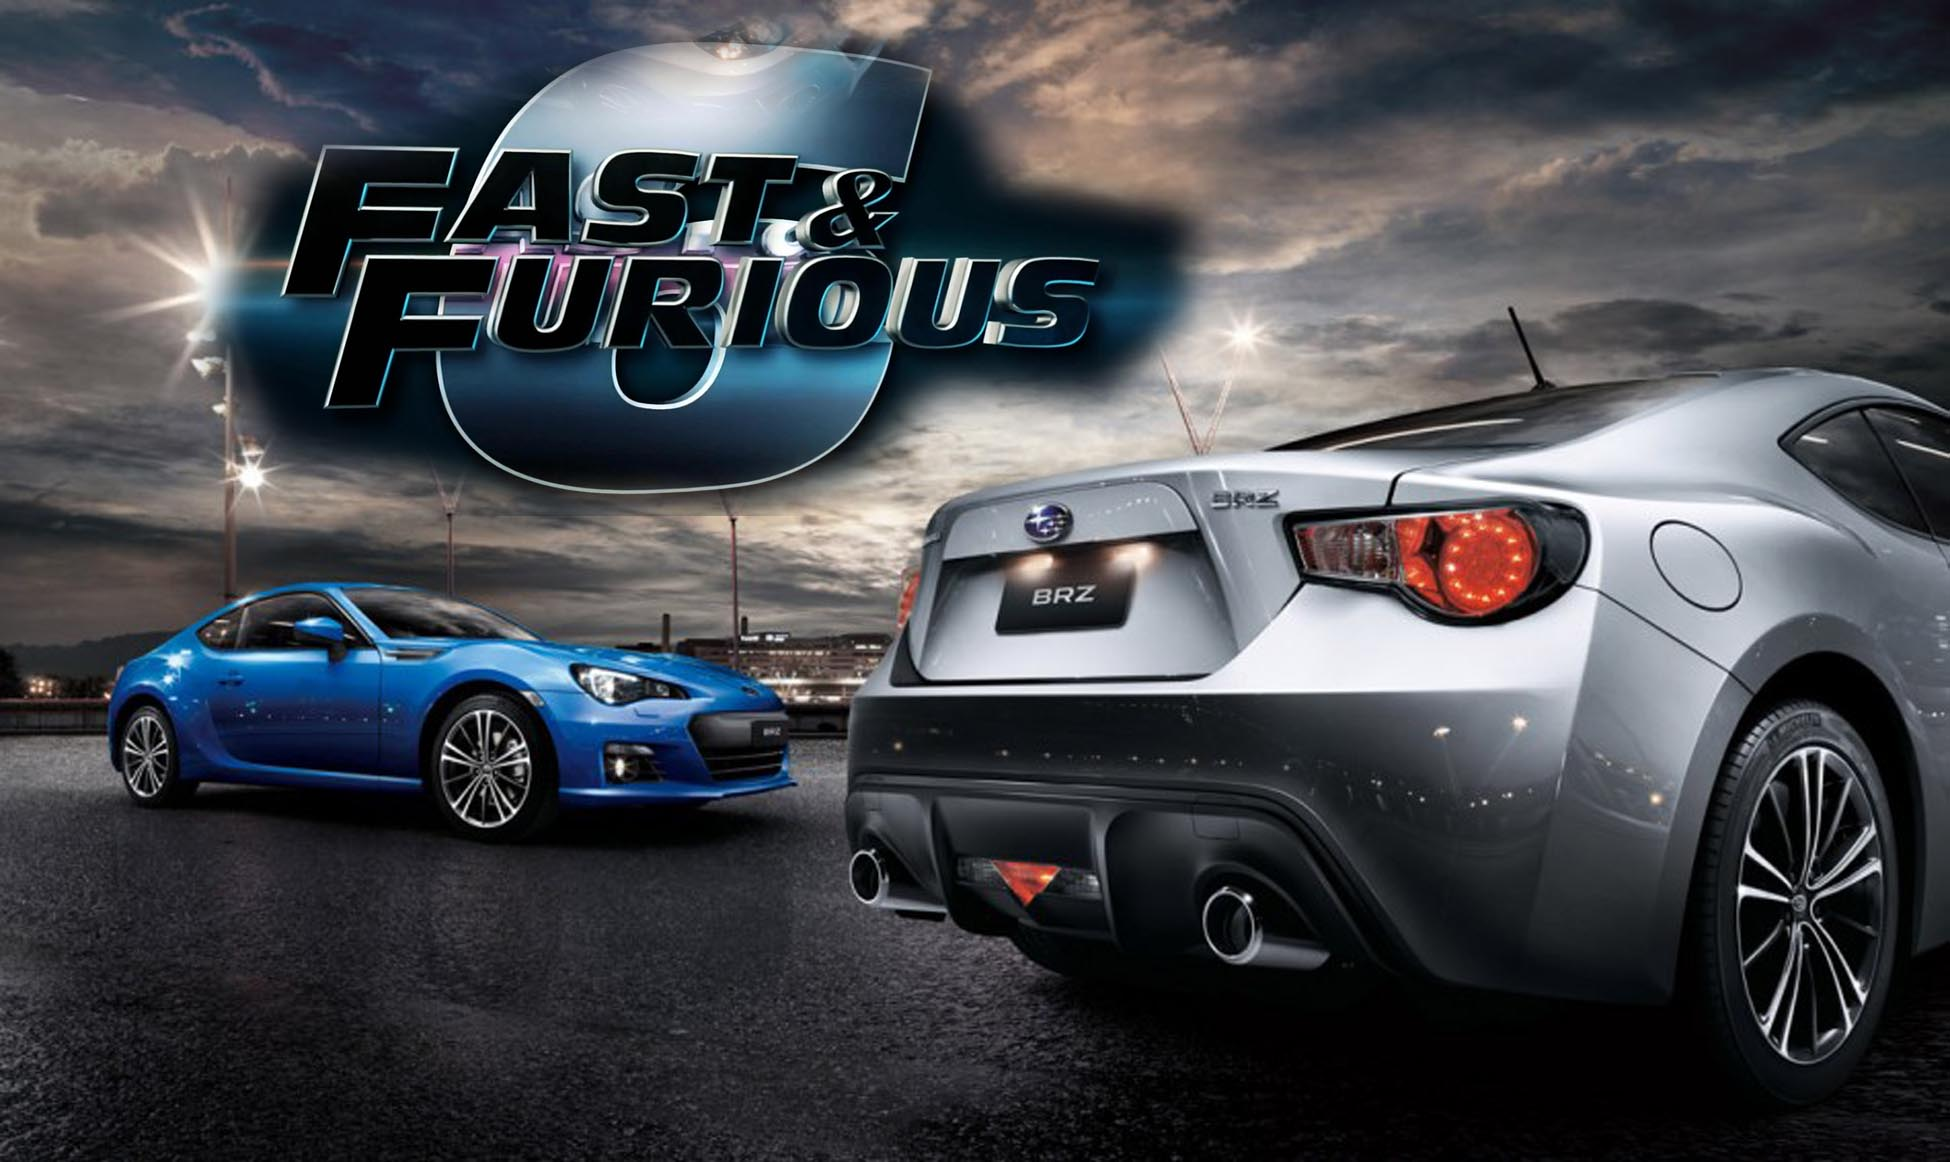 The Fast And The Furious Cars Wallpaper Collection Hd Fast And Furious Cars Backgrounds Pixelstalk Net